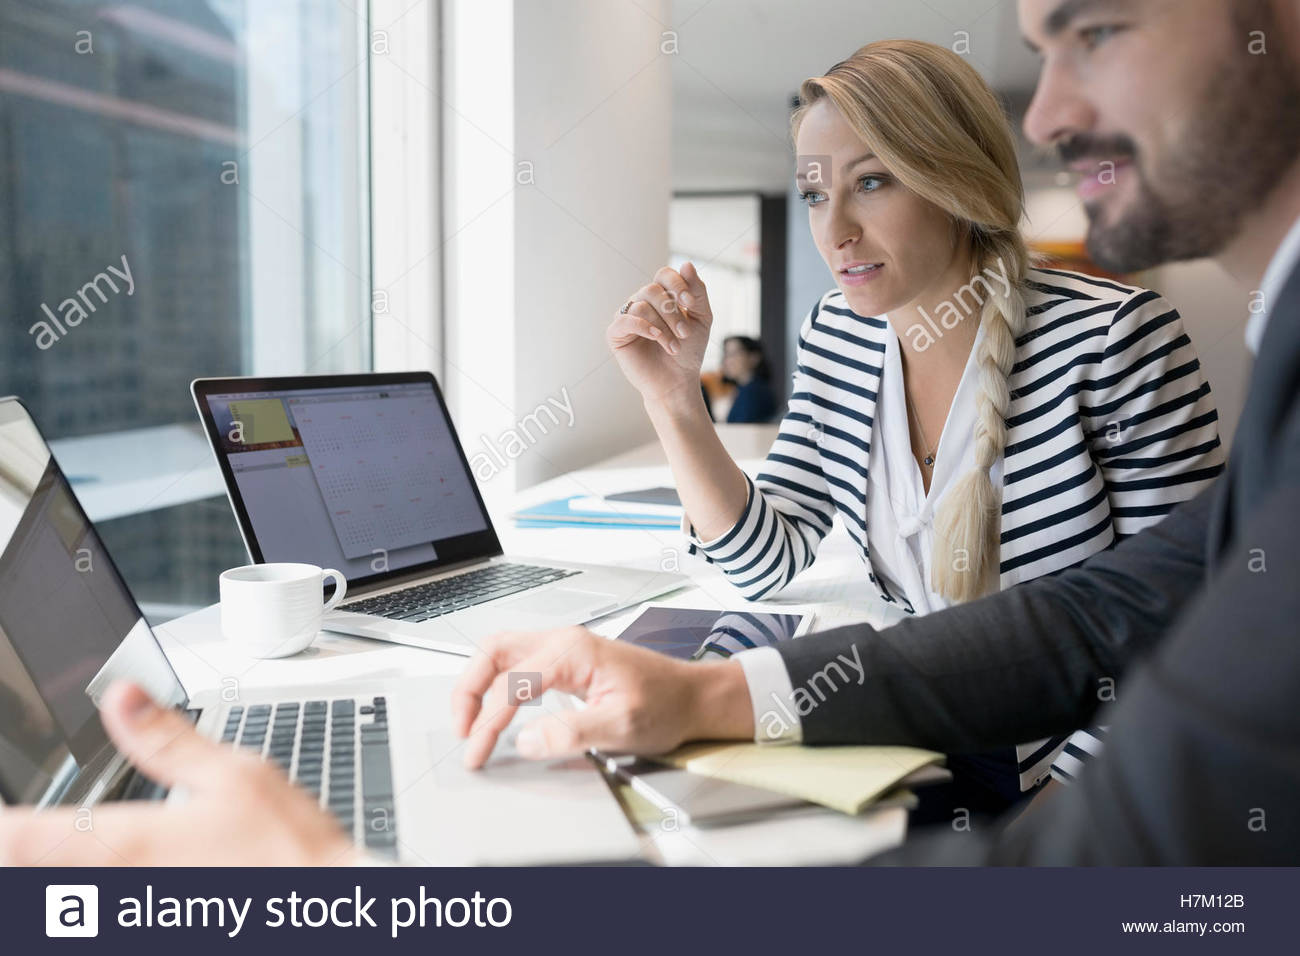 Business people working at laptop - Stock Image